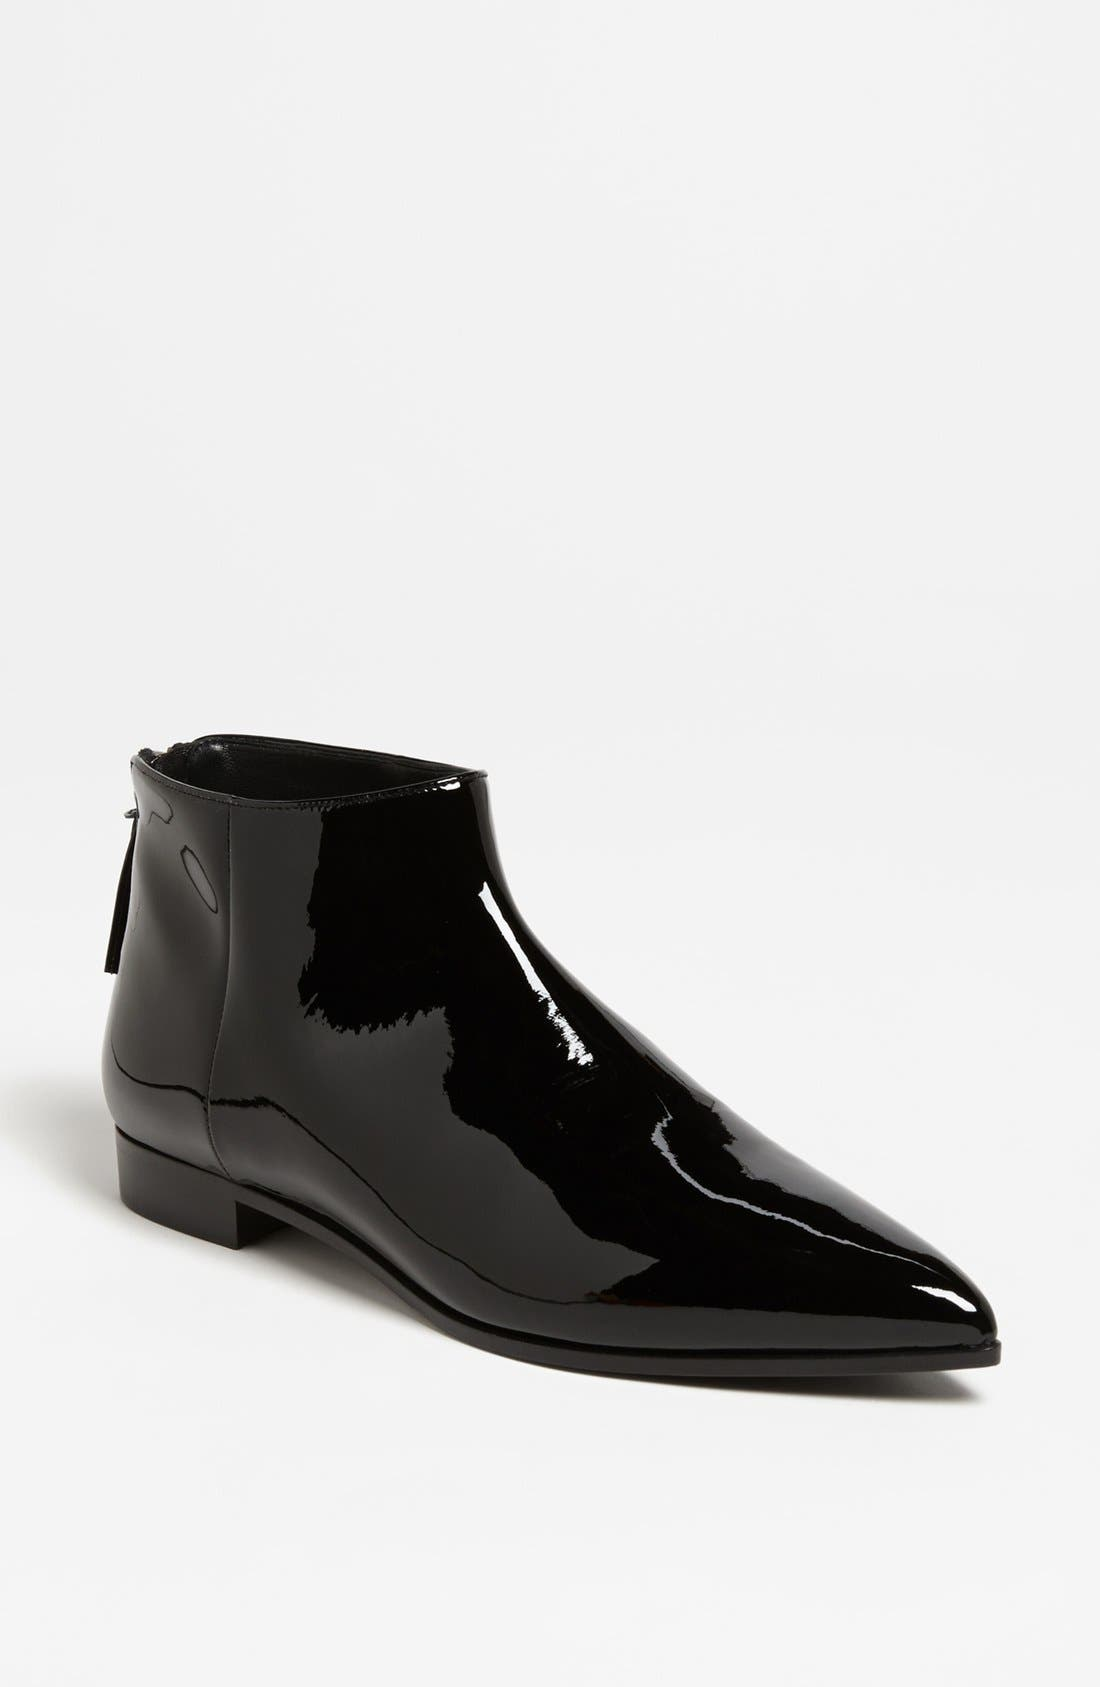 Alternate Image 1 Selected - Miu Miu Pointed Toe Chelsea Bootie